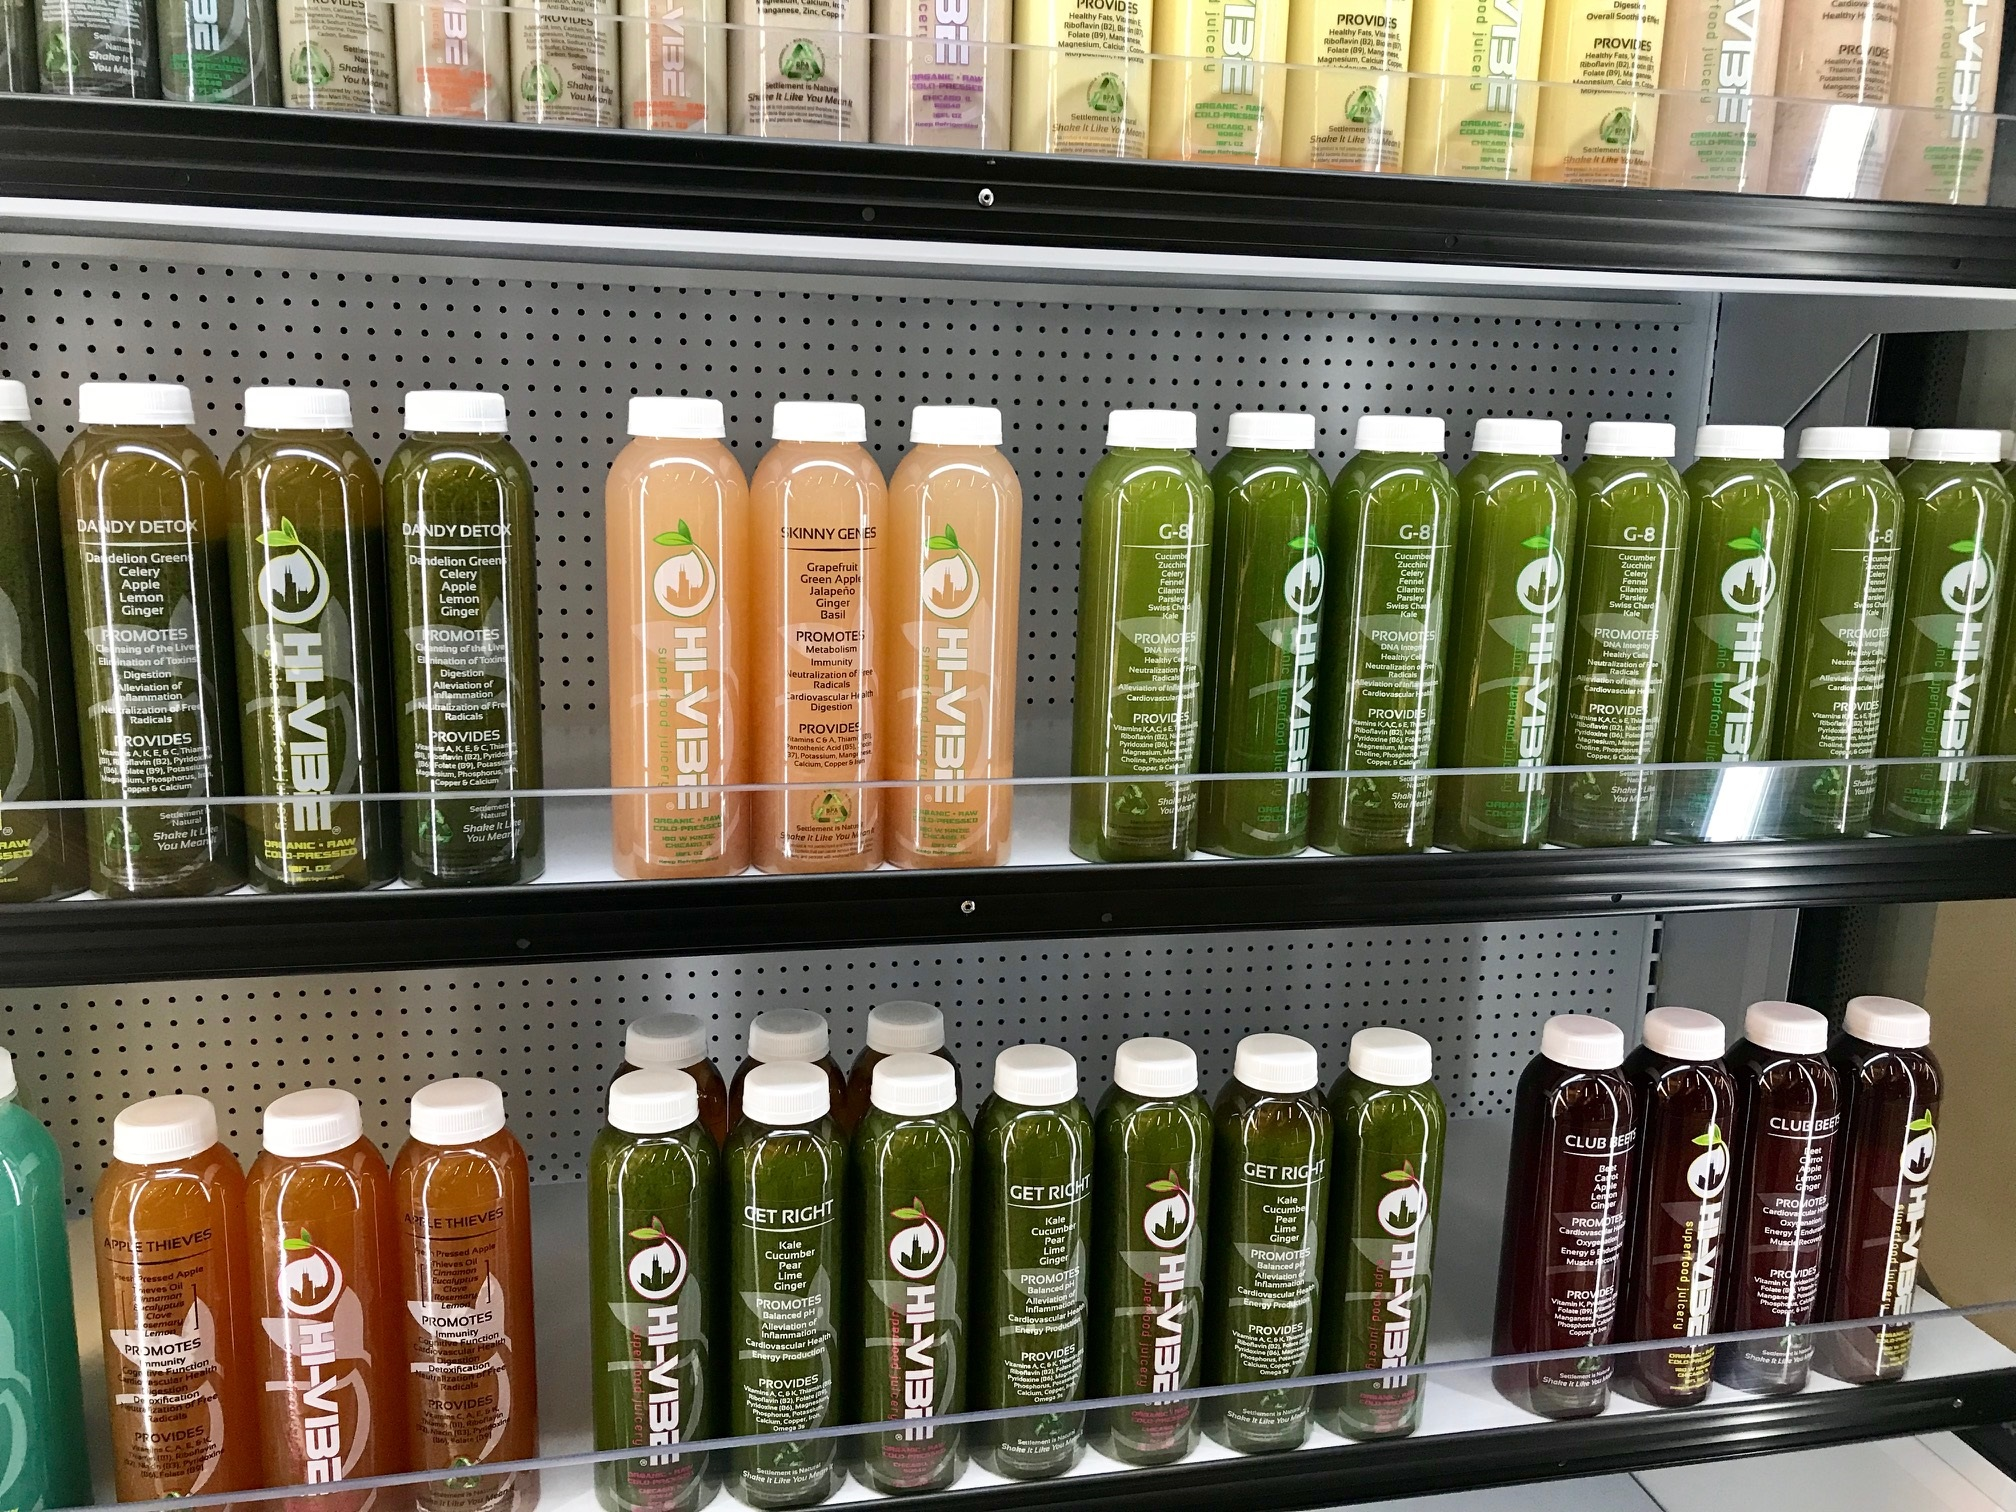 Most items are made to order, but you can also grab a few HiVibe elixirs from the refrigerated section if you're in a hurry.